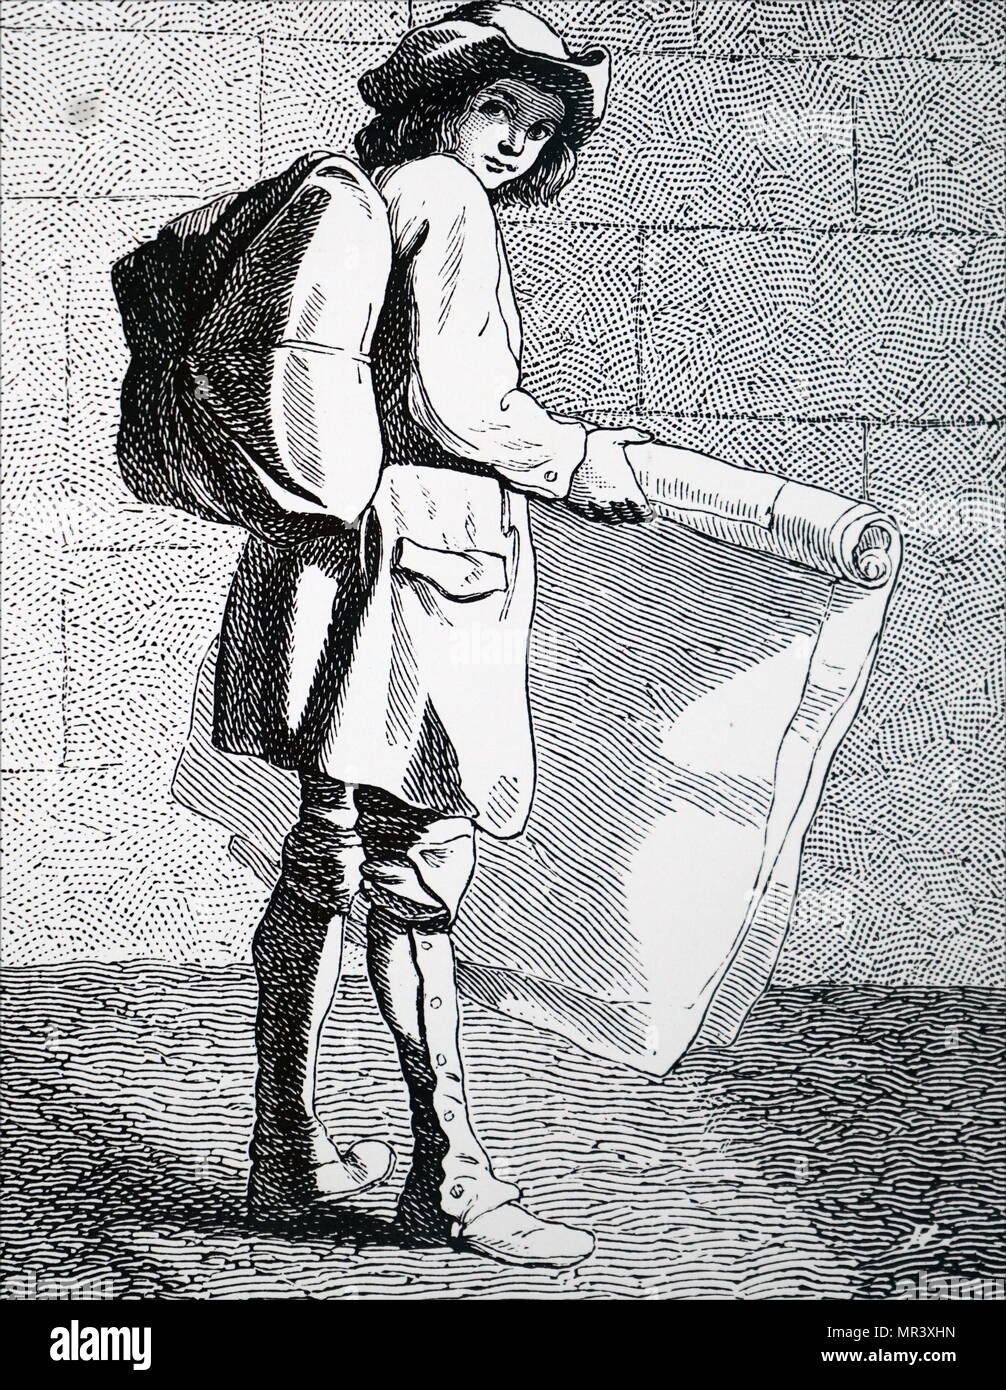 Engraving titled 'The Print Seller'. Dated 18th century - Stock Image